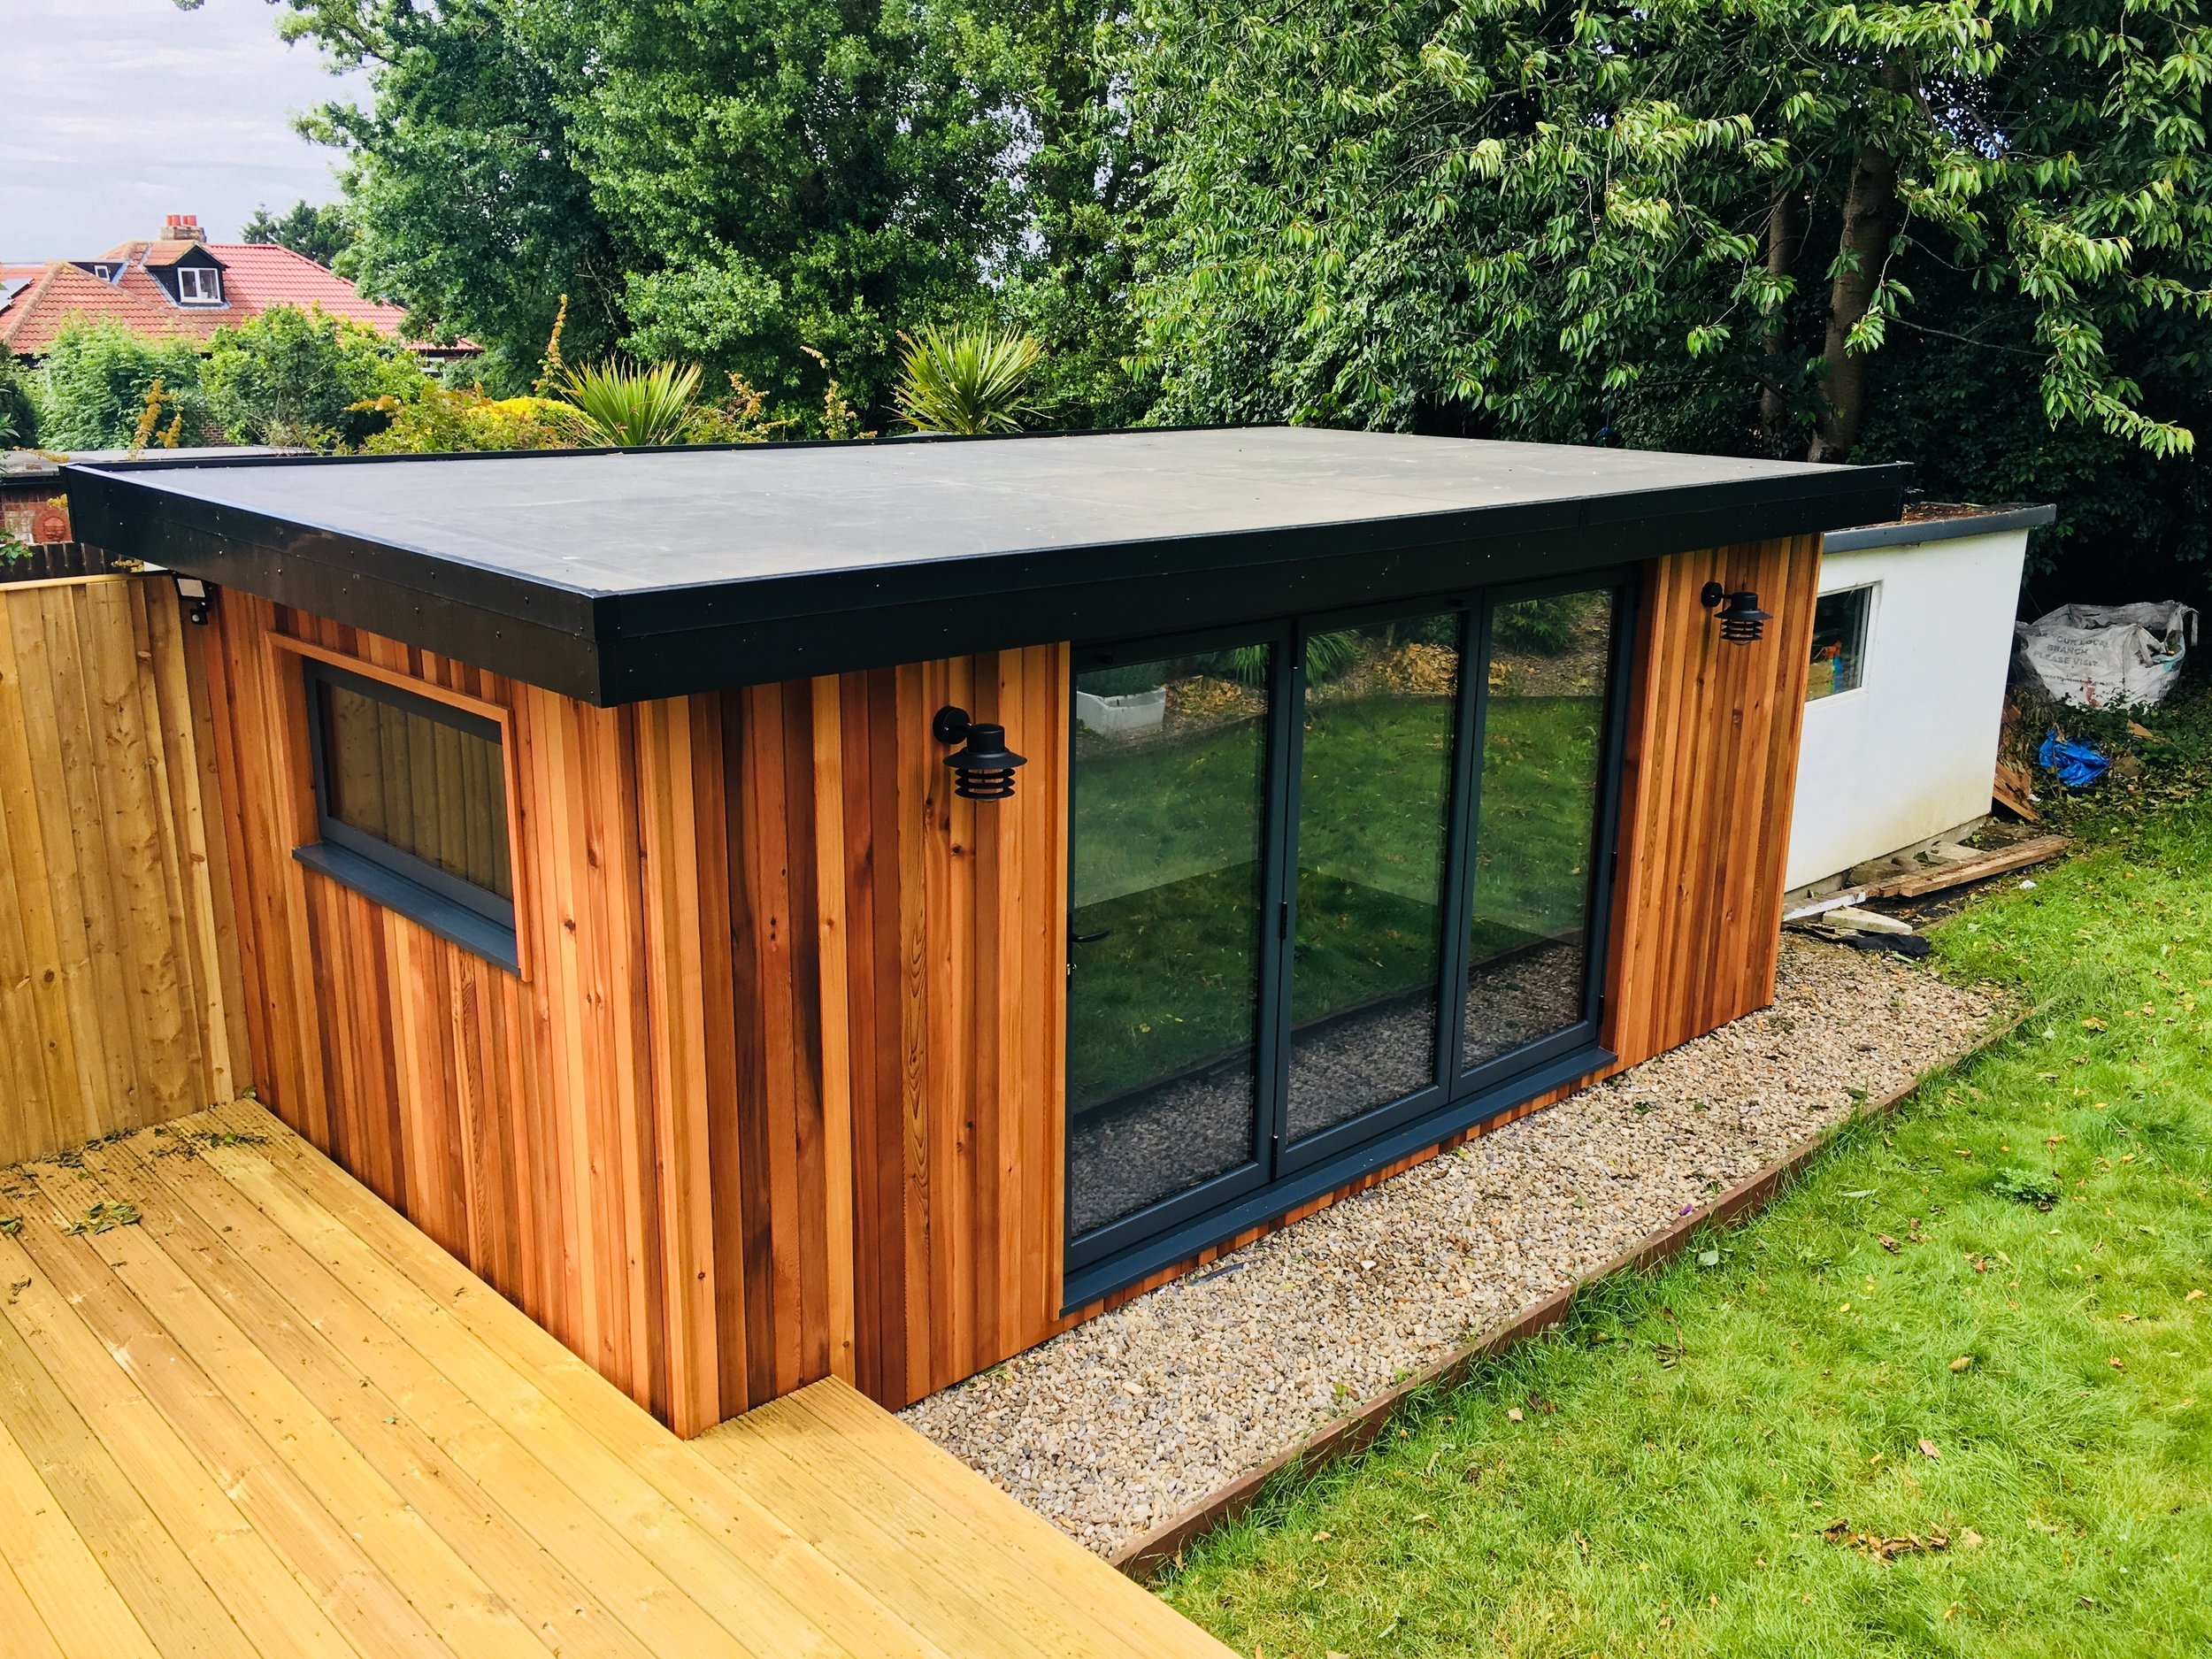 Building For Eco Garden Rooms - Natural Materials And Man-Made Materials